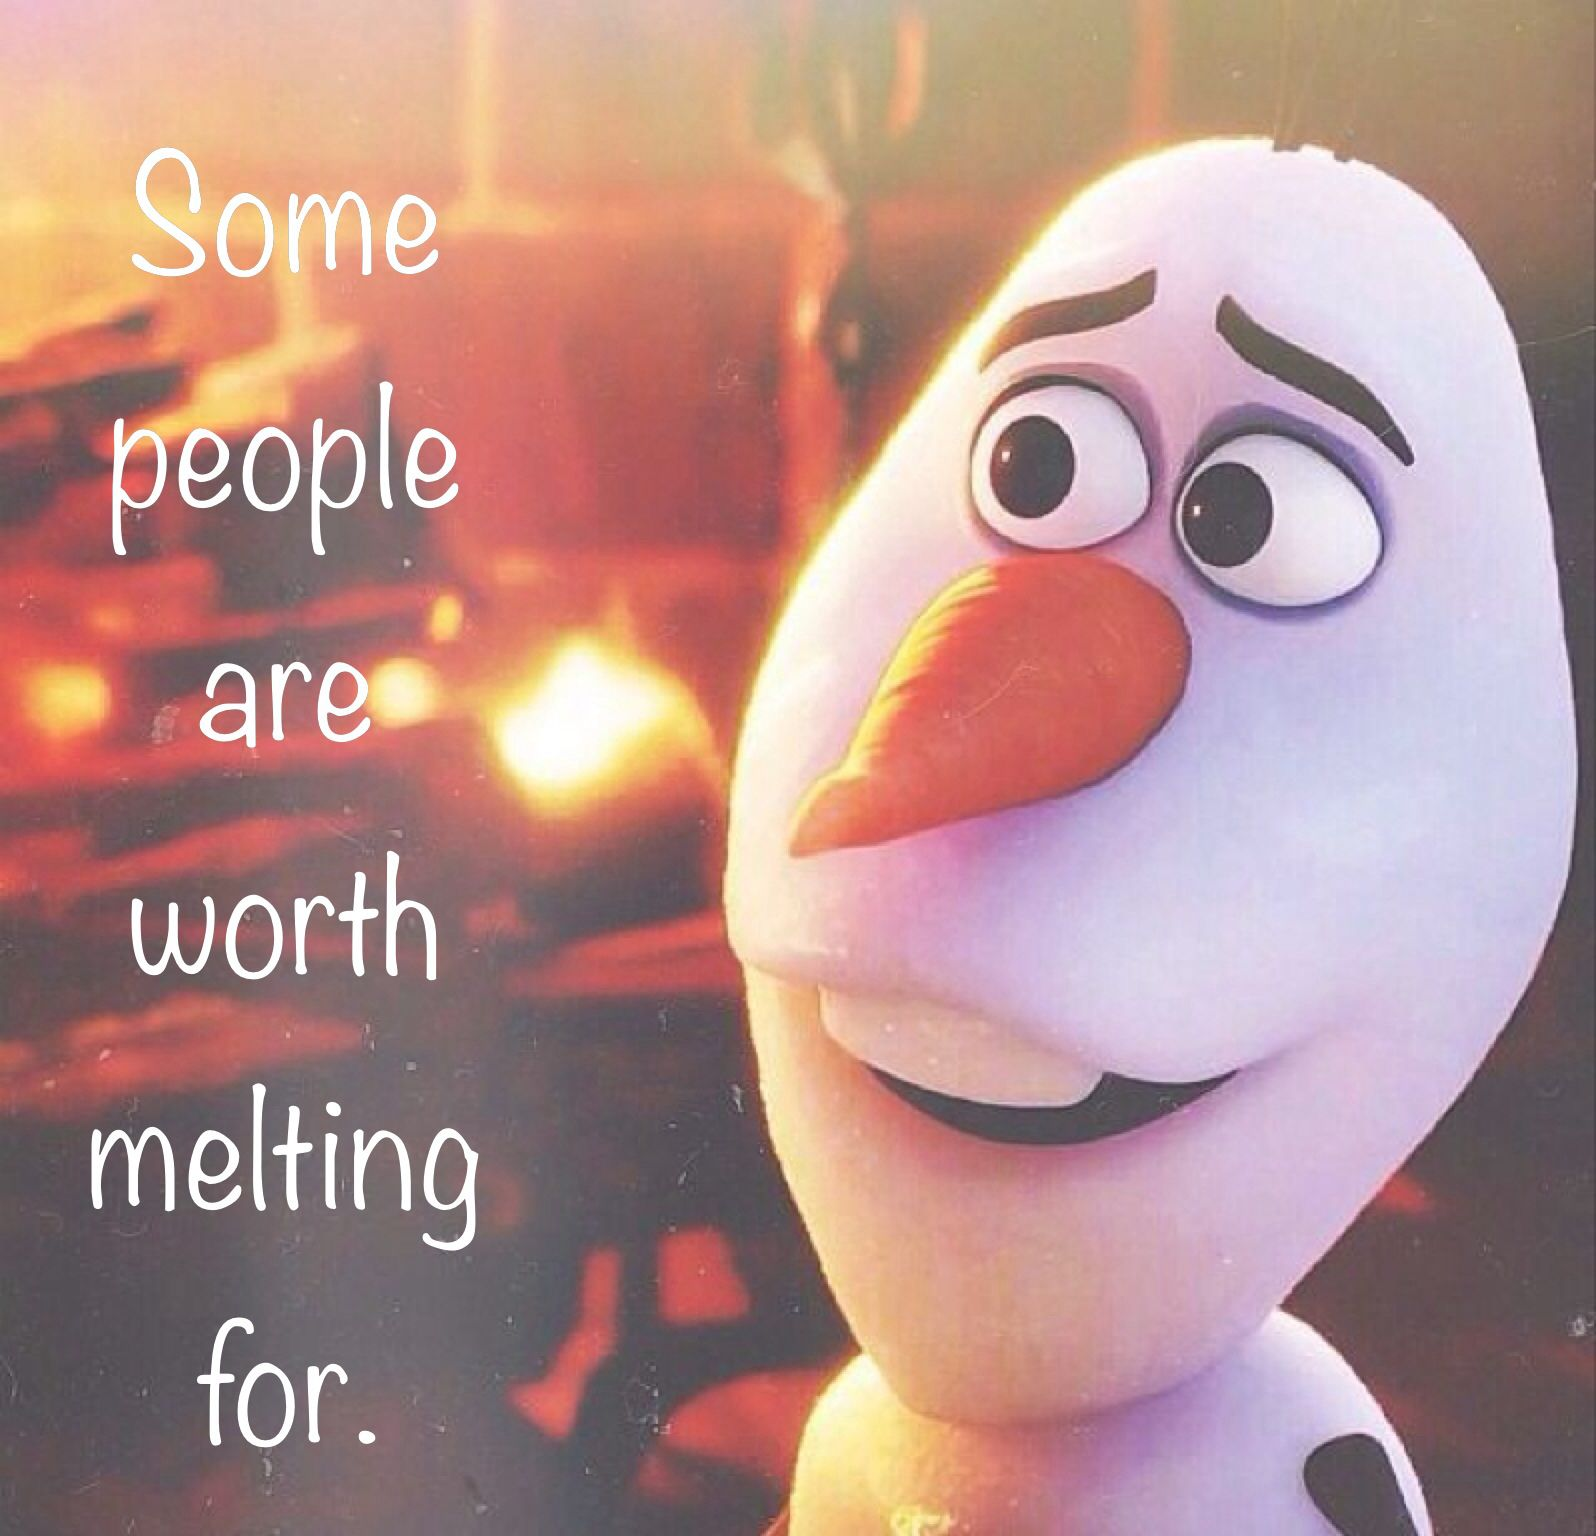 Cute Disney Quotes About Friendship : Some people disney s quot frozen